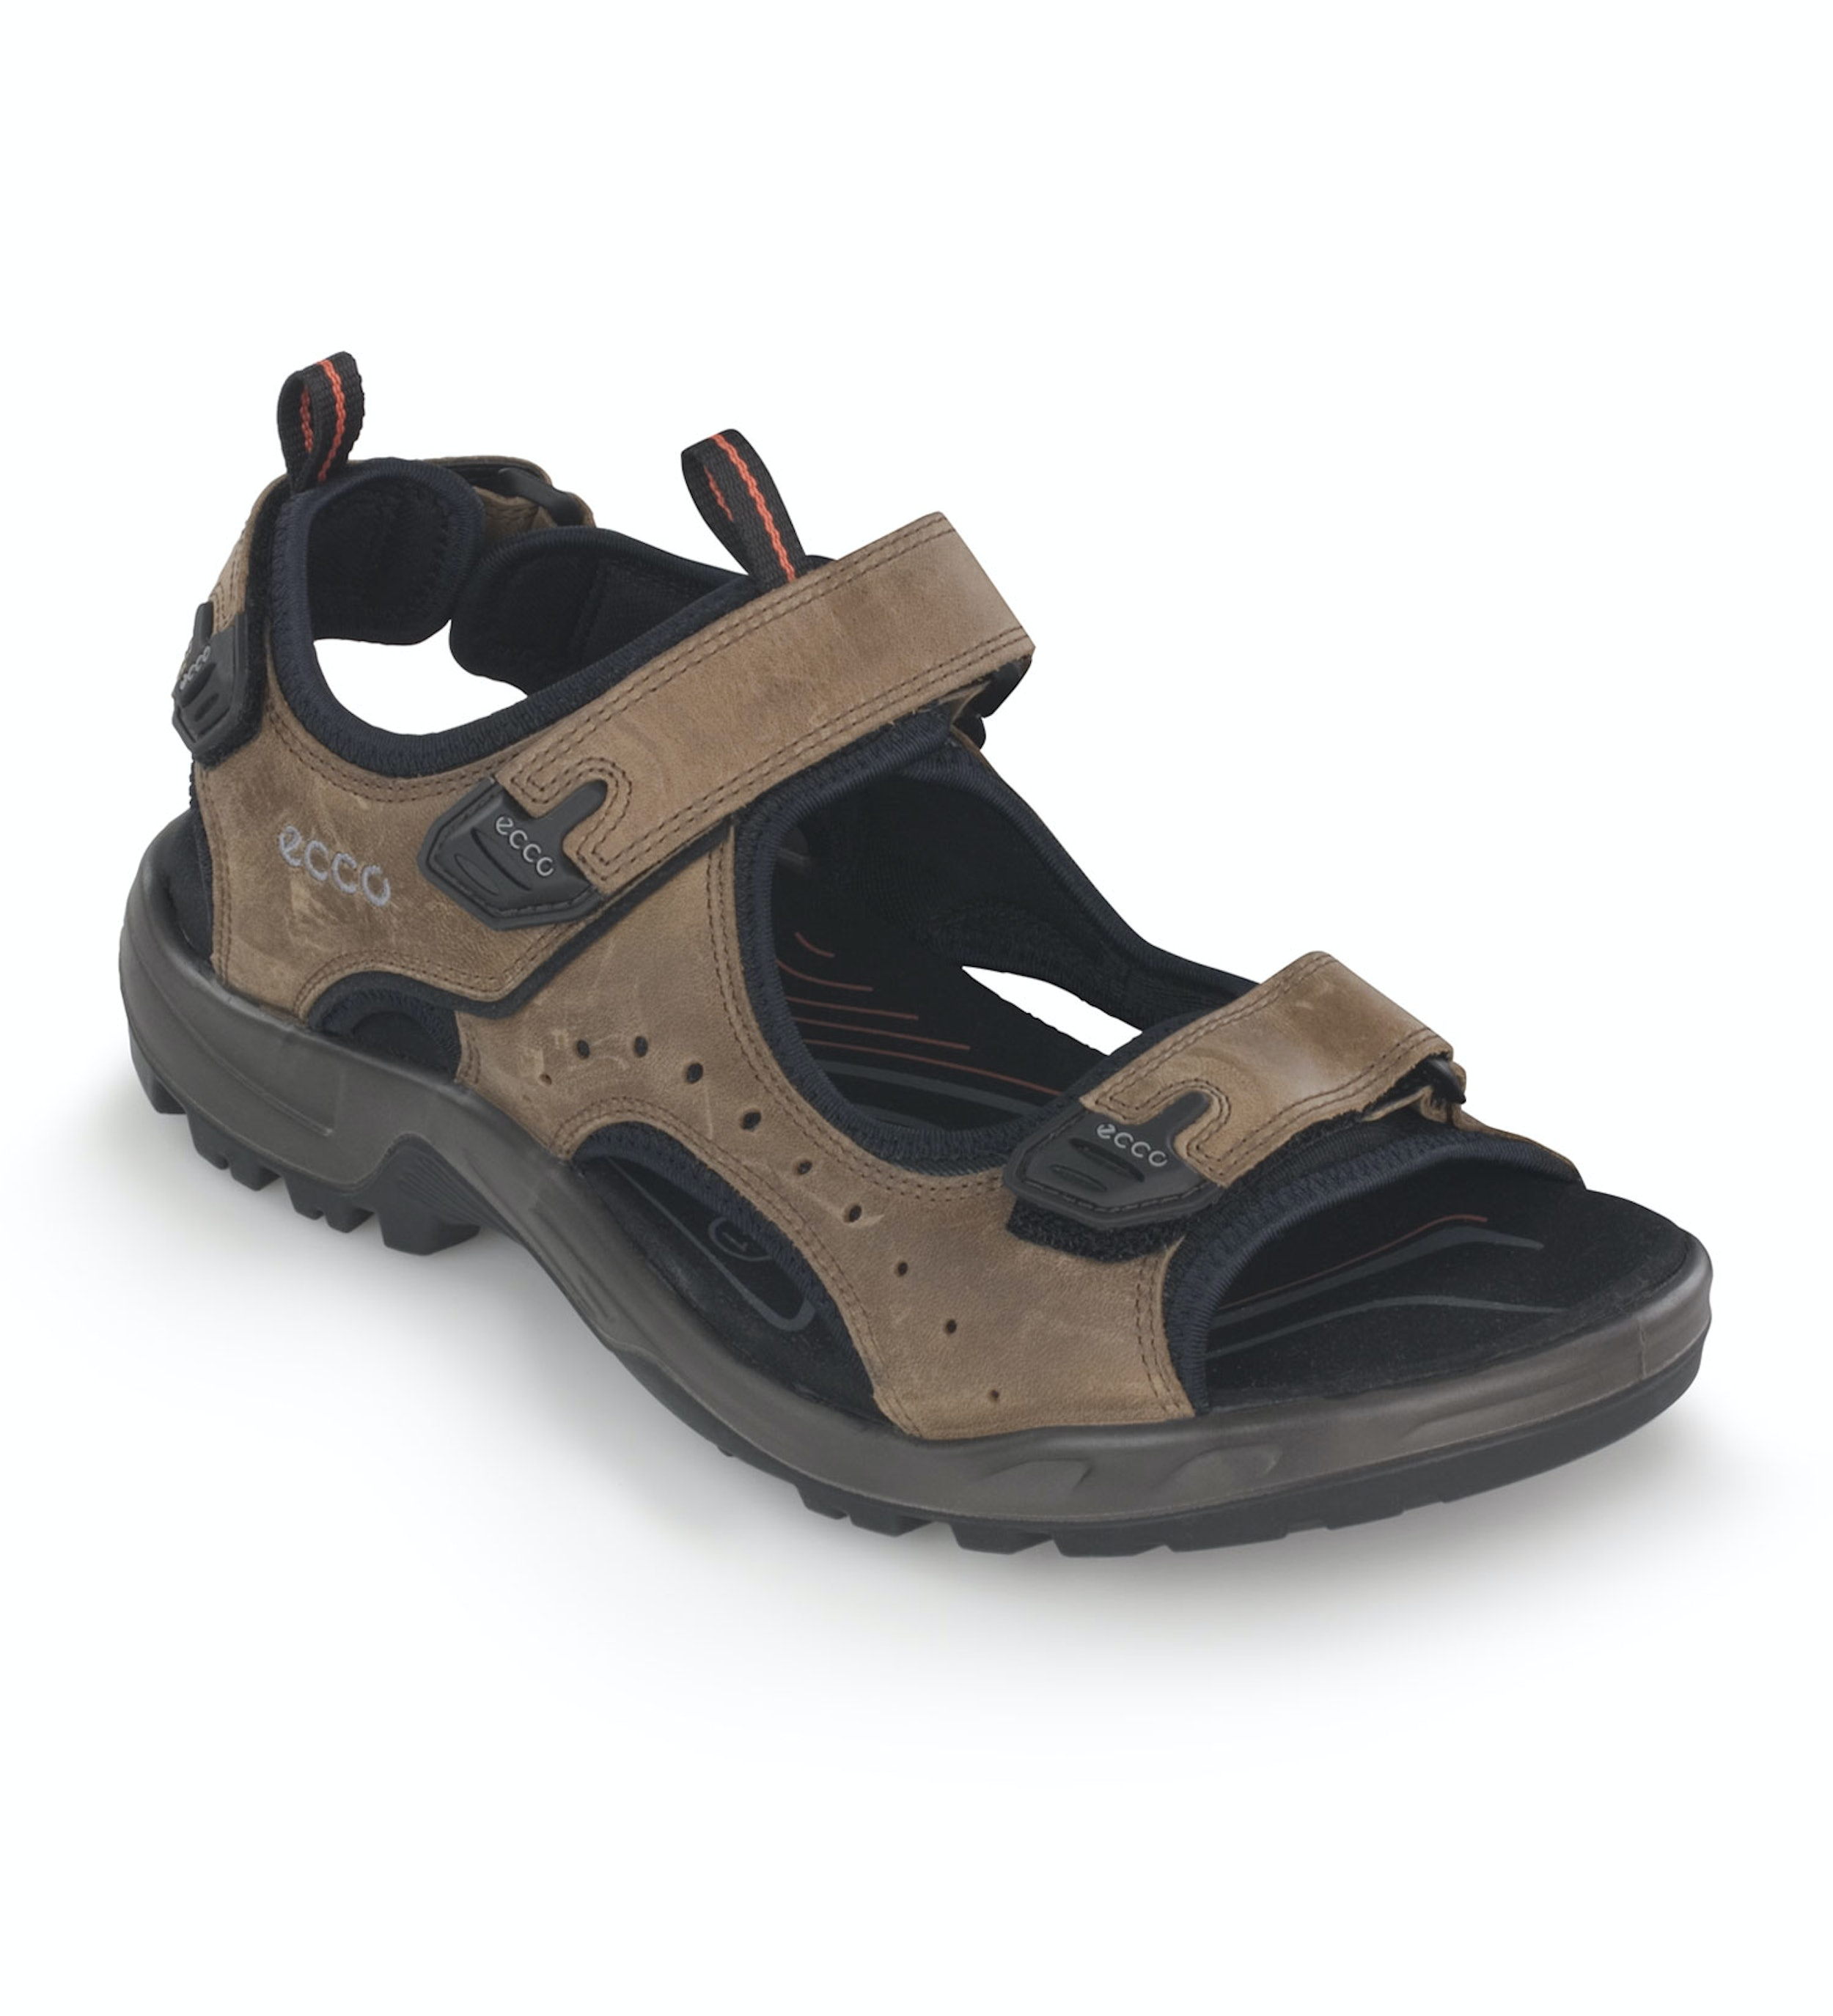 sophisticated technologies lowest price newest style of Men's ECCO Offroad Andes II - Rugged sandals for varied terrain.